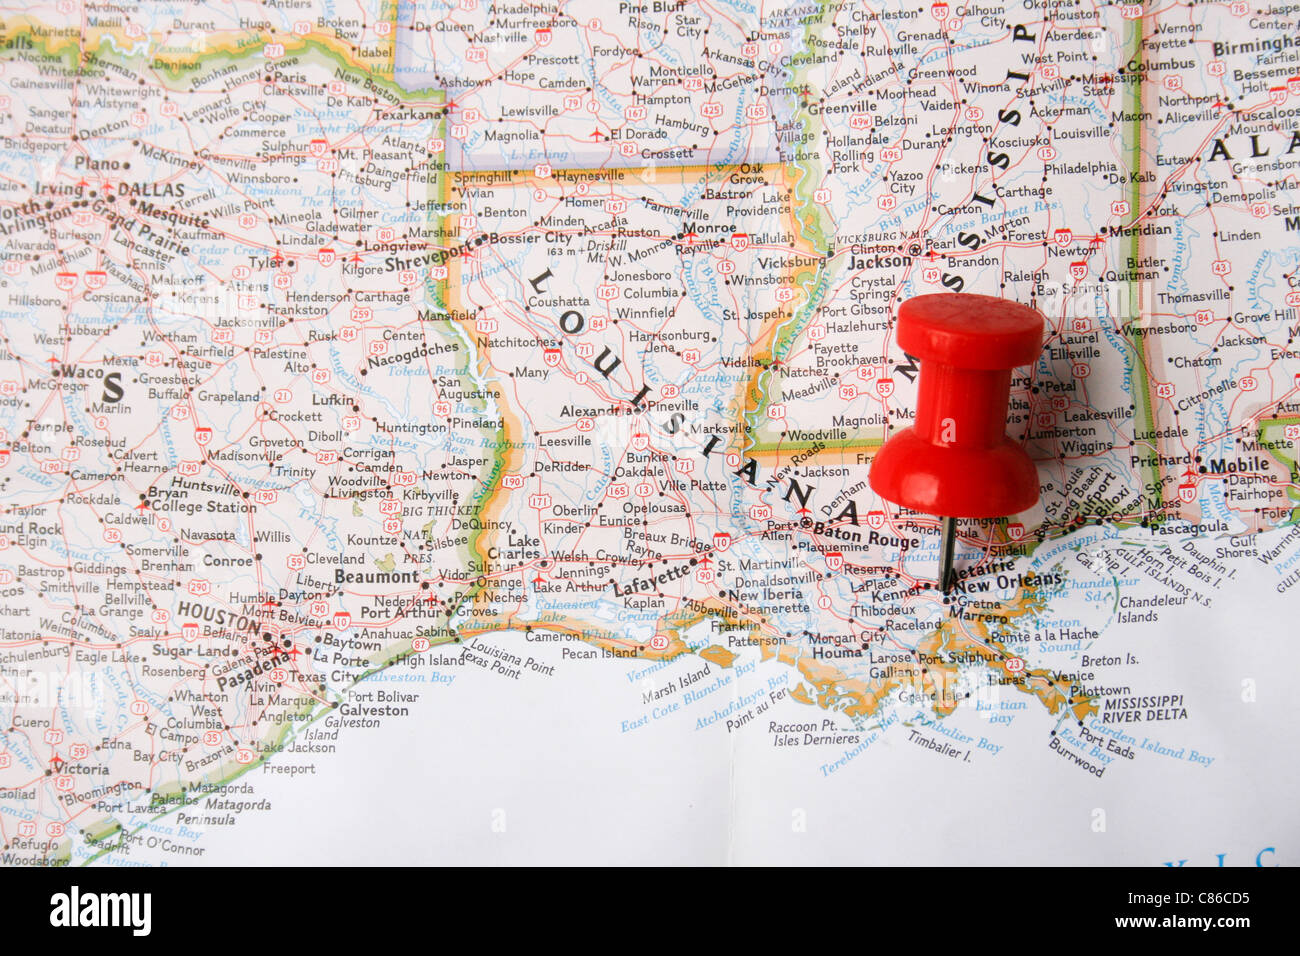 Louisiana New Orleans Map.Red Pin On Map Of Usa Pointing At New Orleans Louisiana Stock Photo